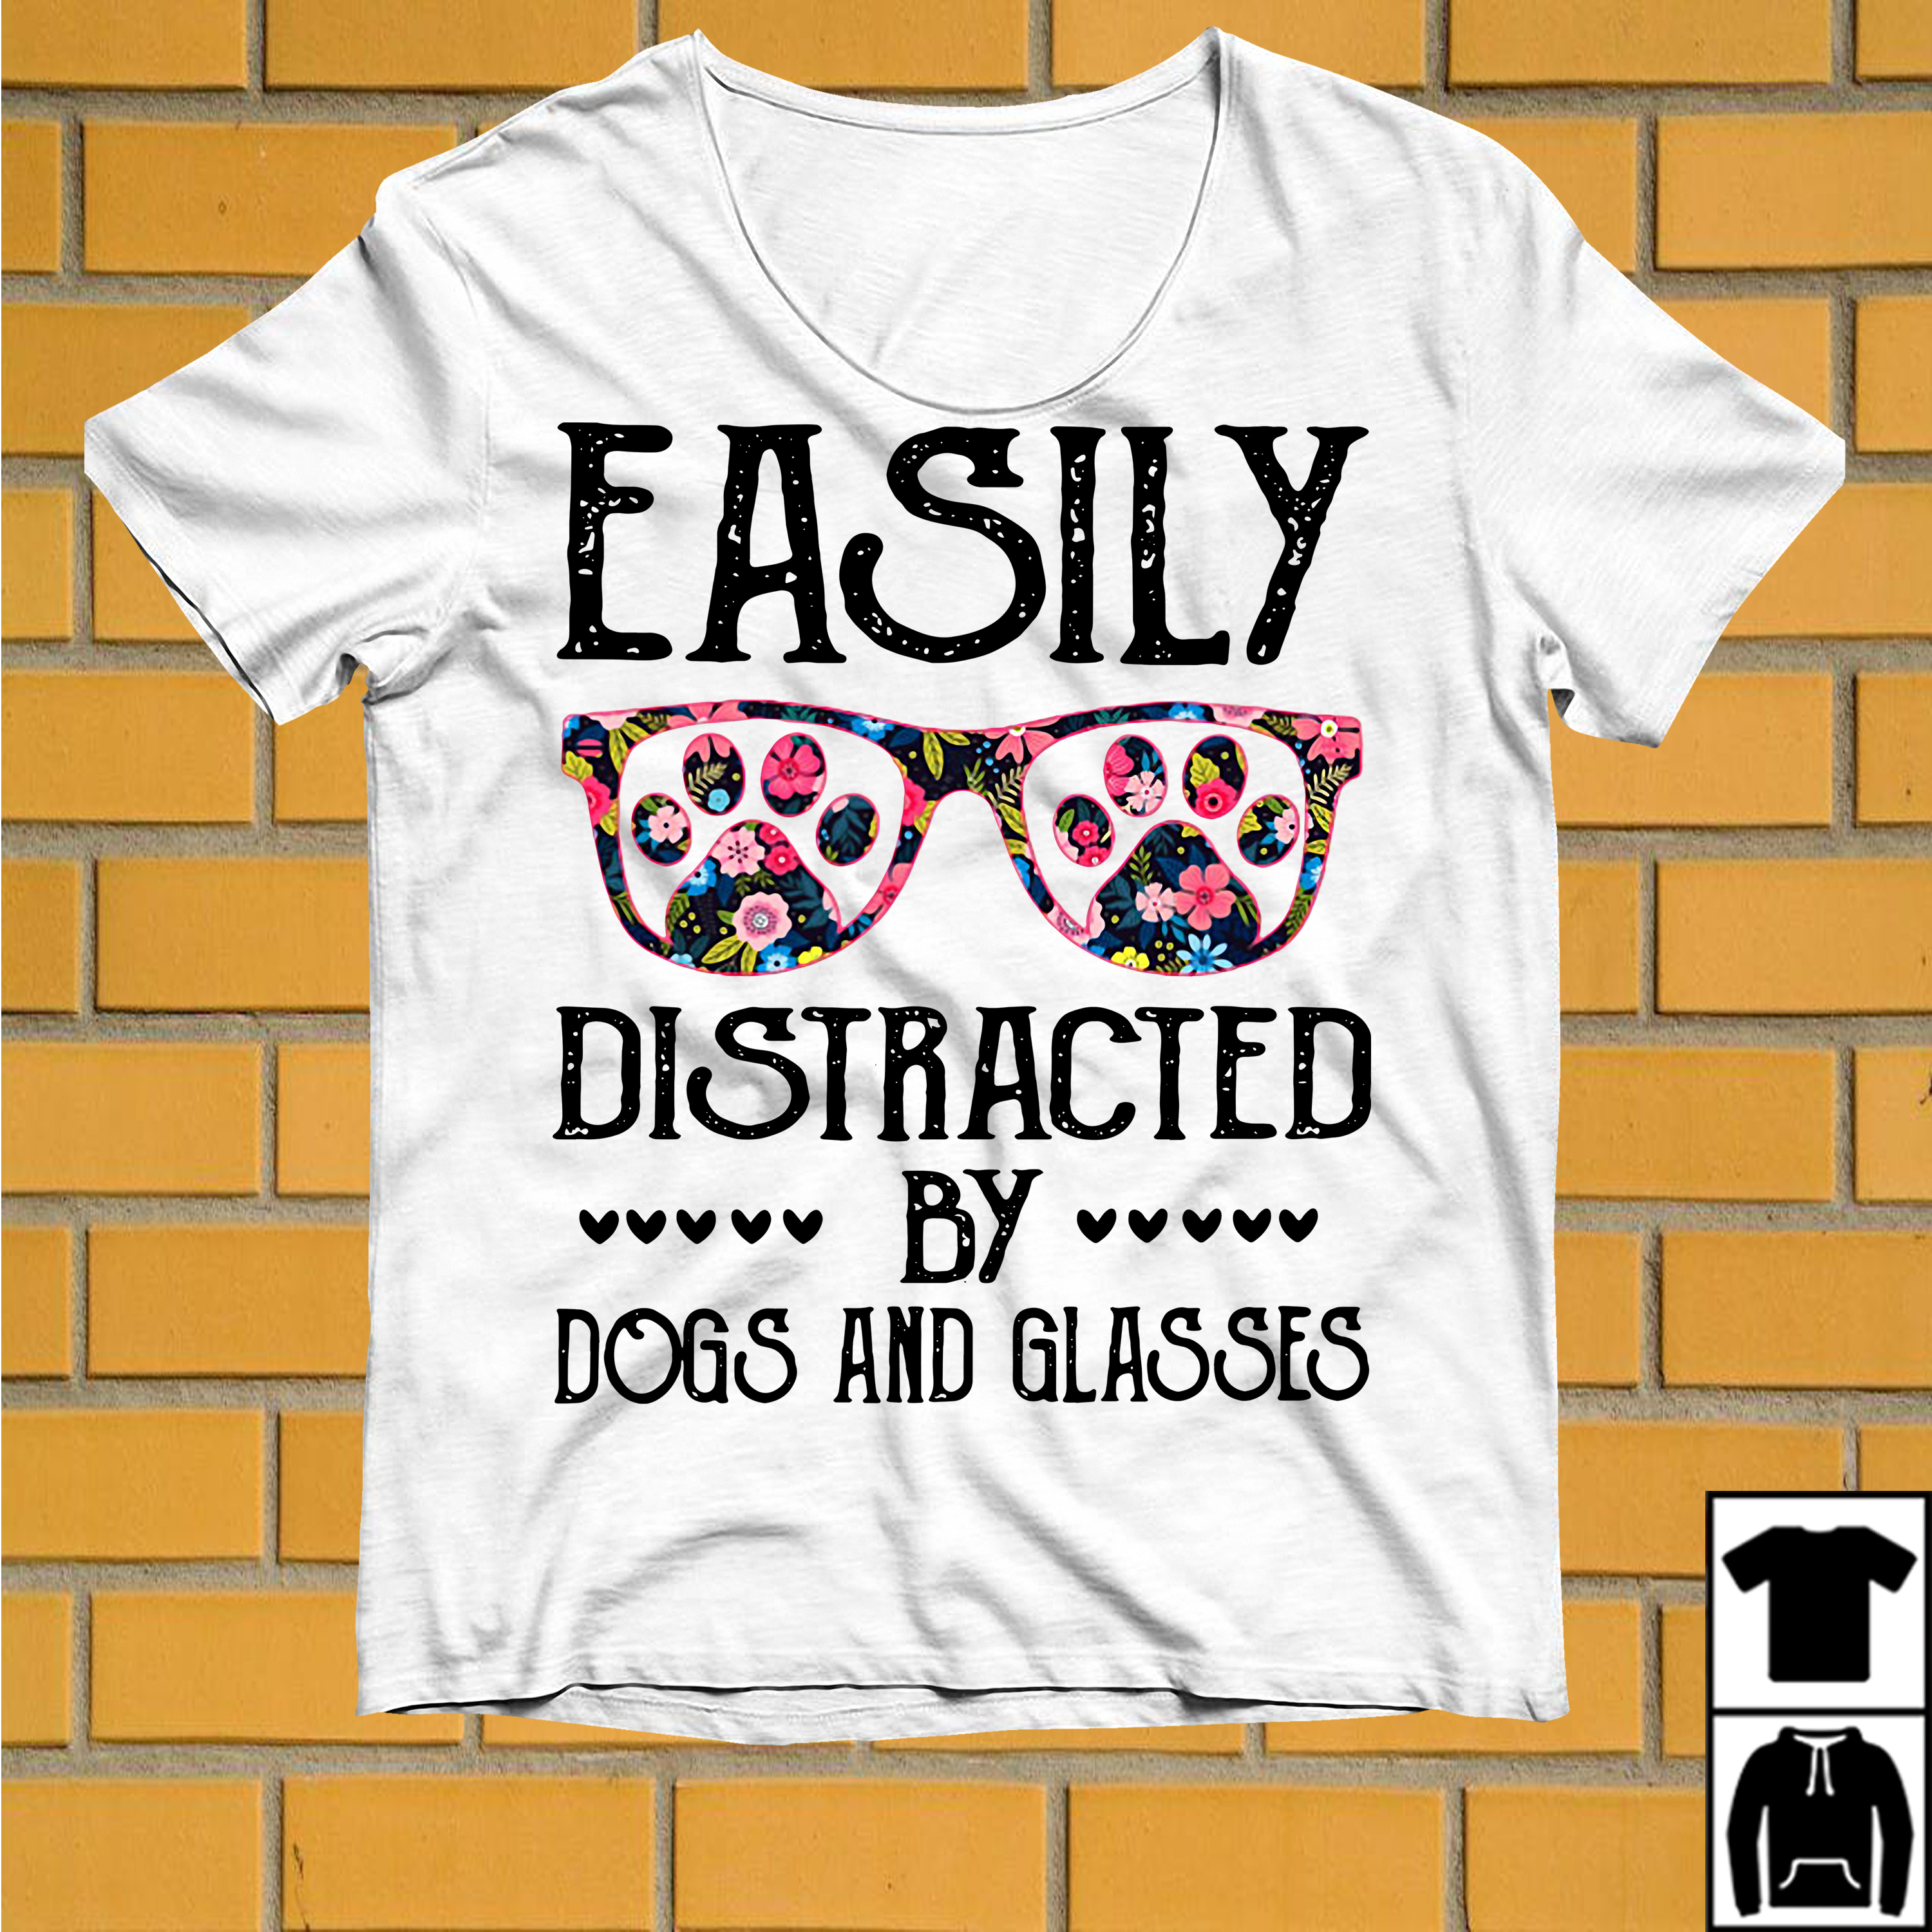 Easily distracted by Dogs and Glasses shirt